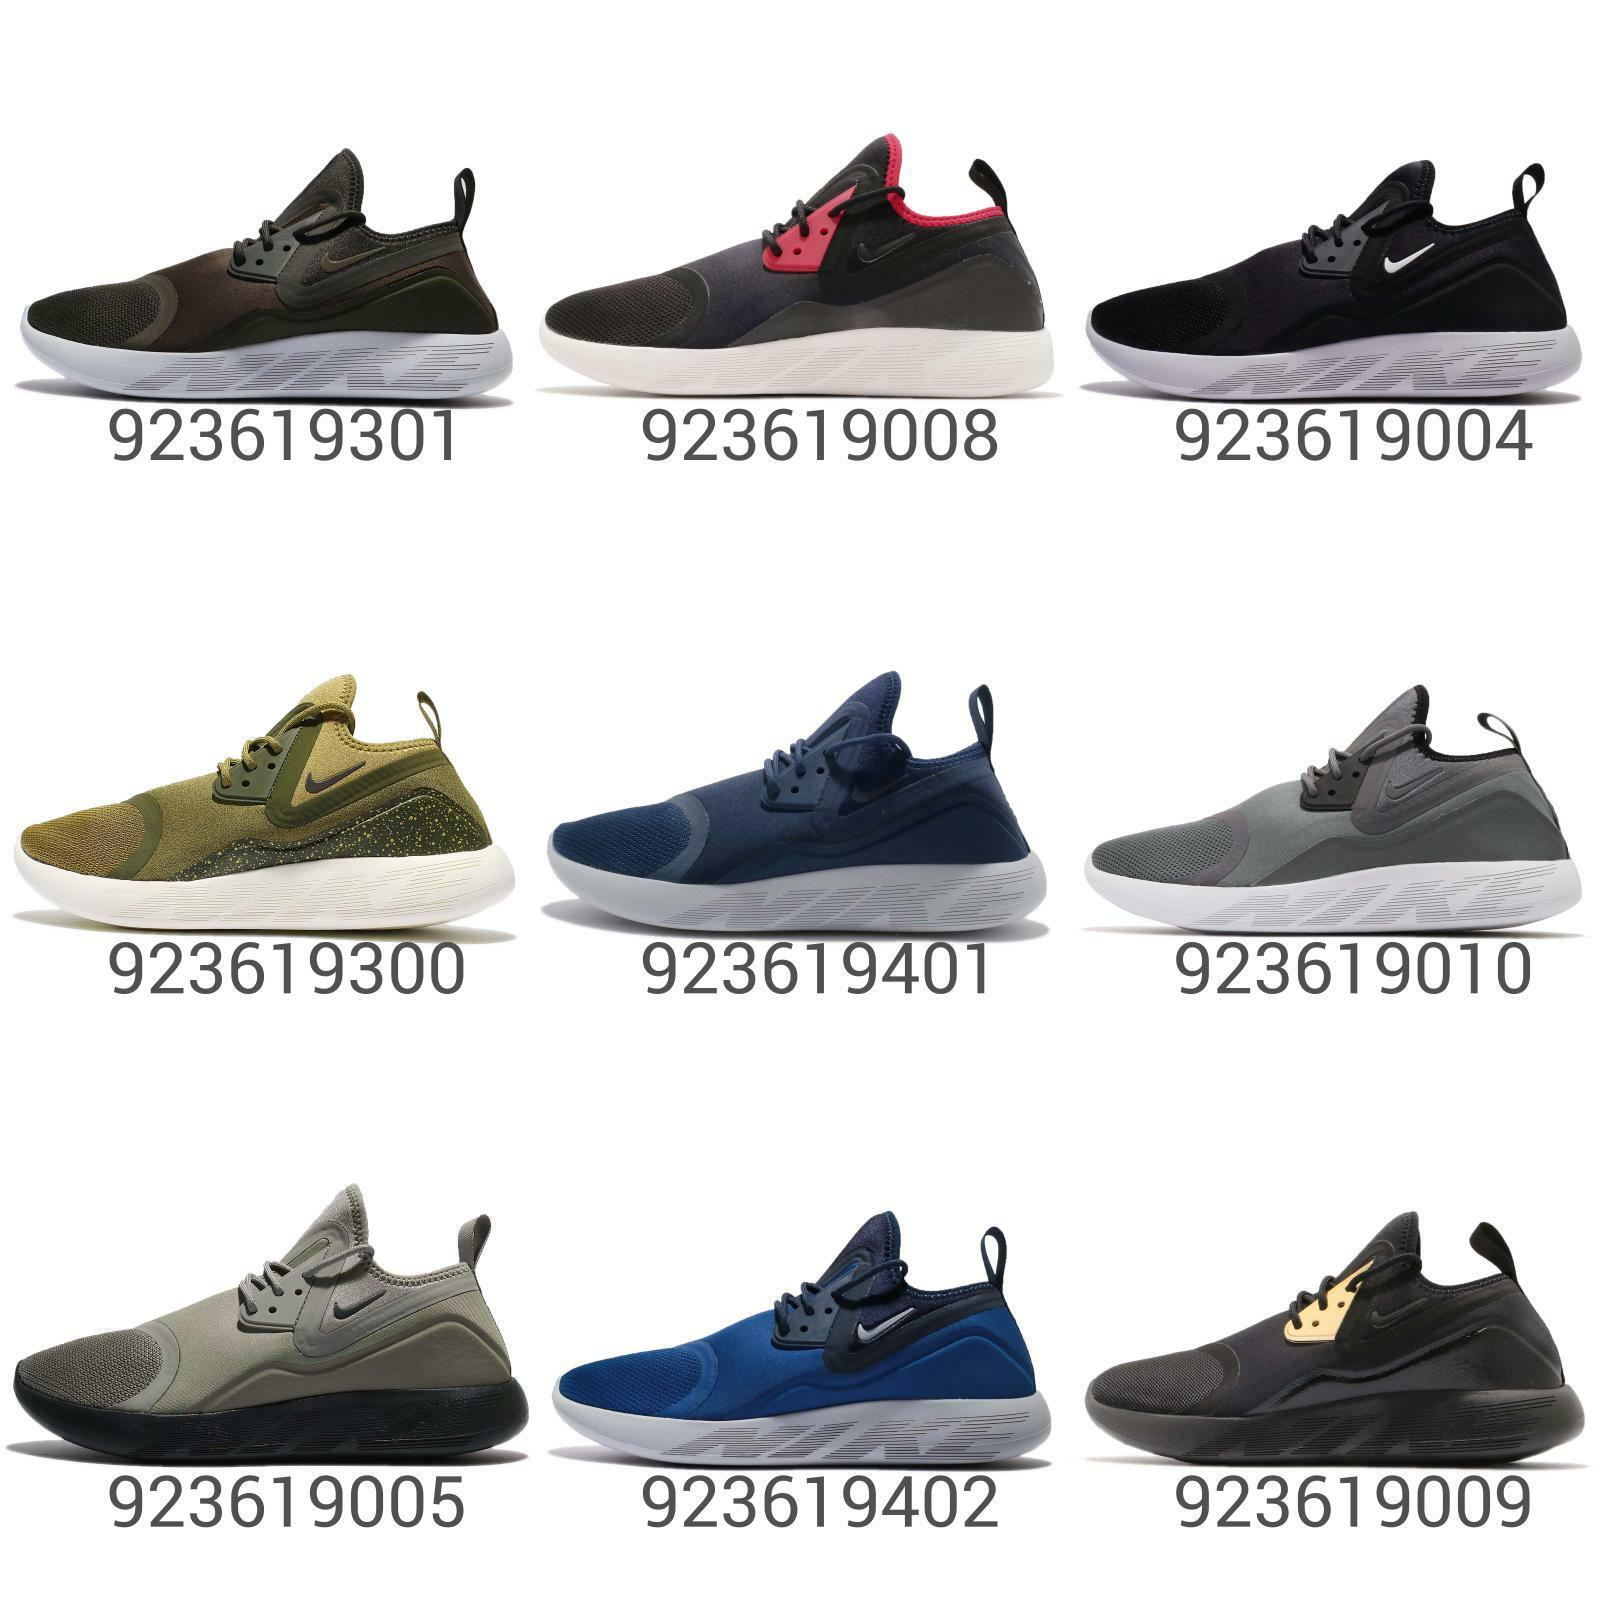 Nike Essential Lunarcharge Essential Nike homme fonctionnement chaussures Lunarlon Lifestyle Sneakers Pick 1 4bee44